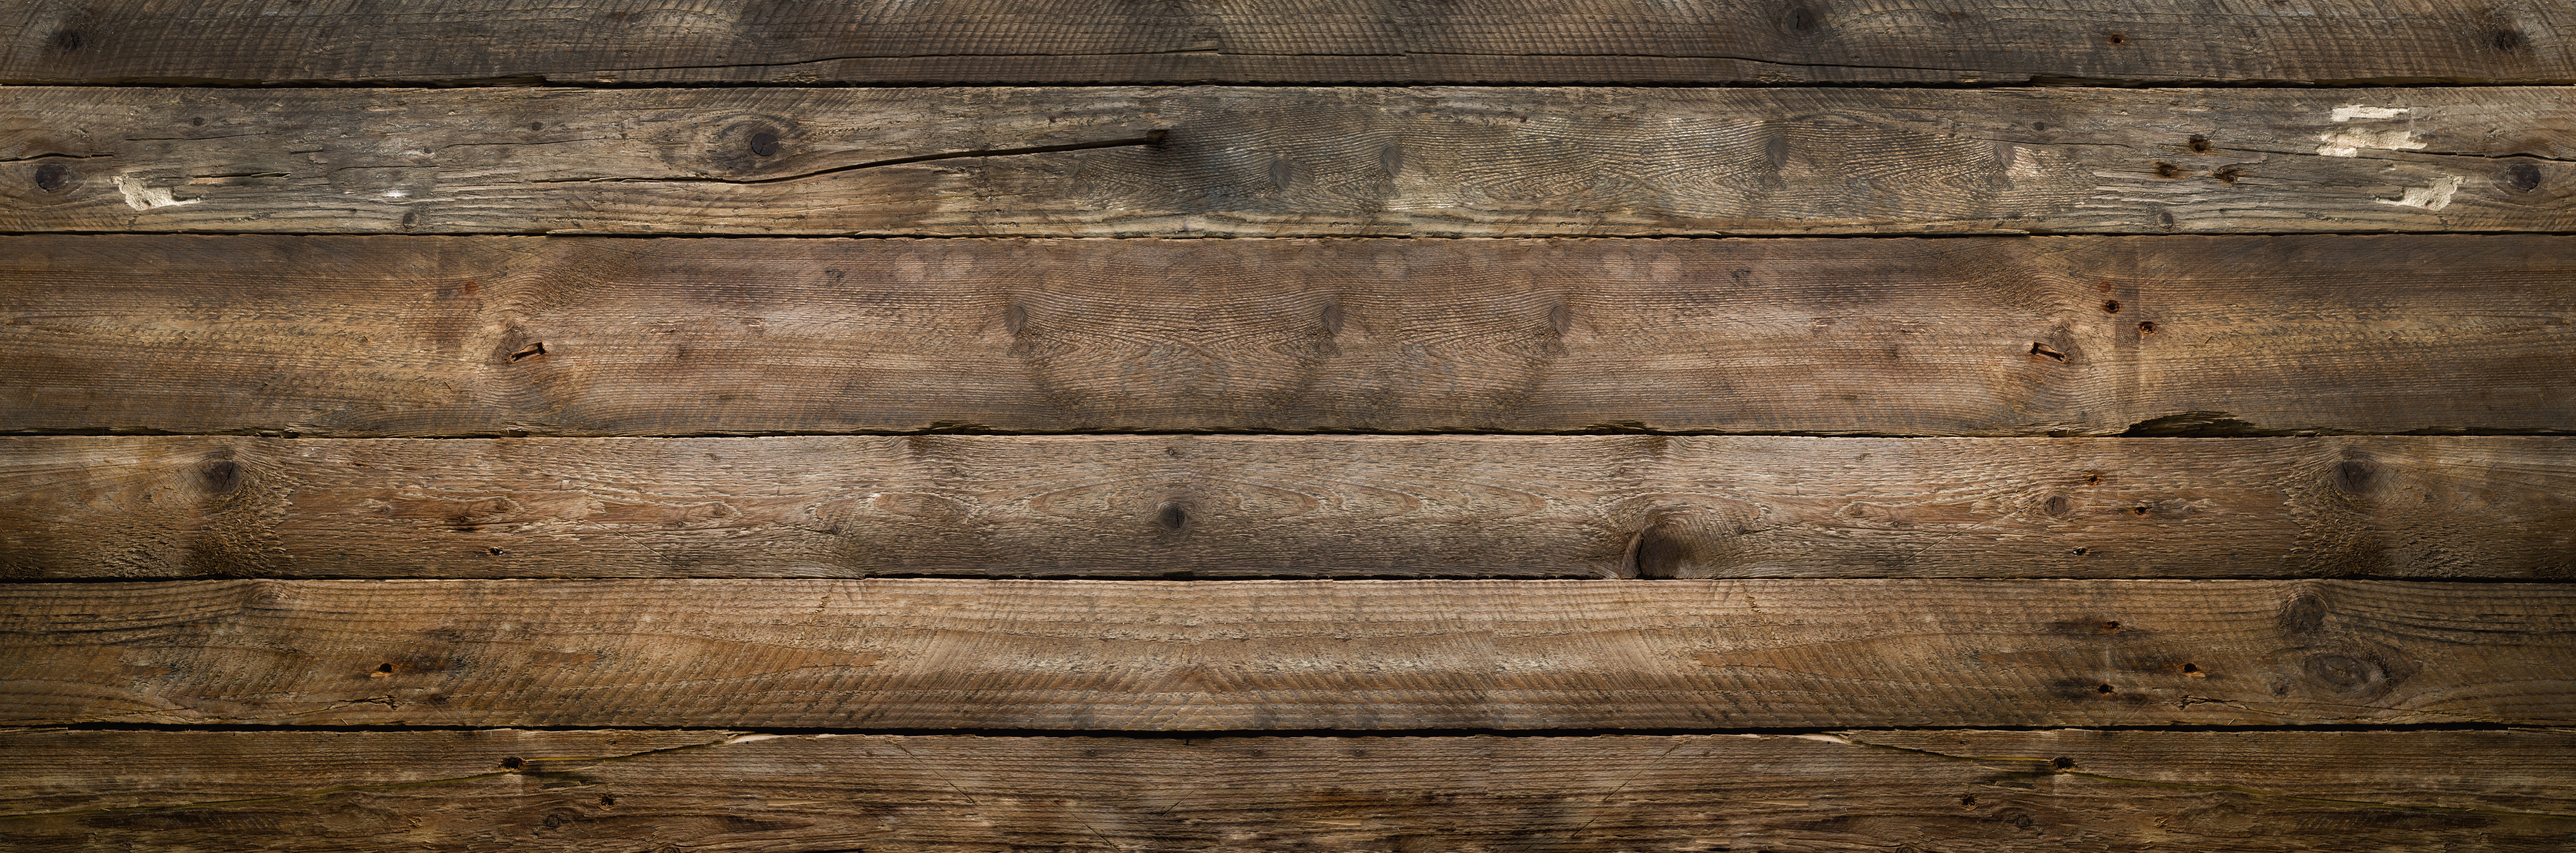 Wood Paneling for Rental Property